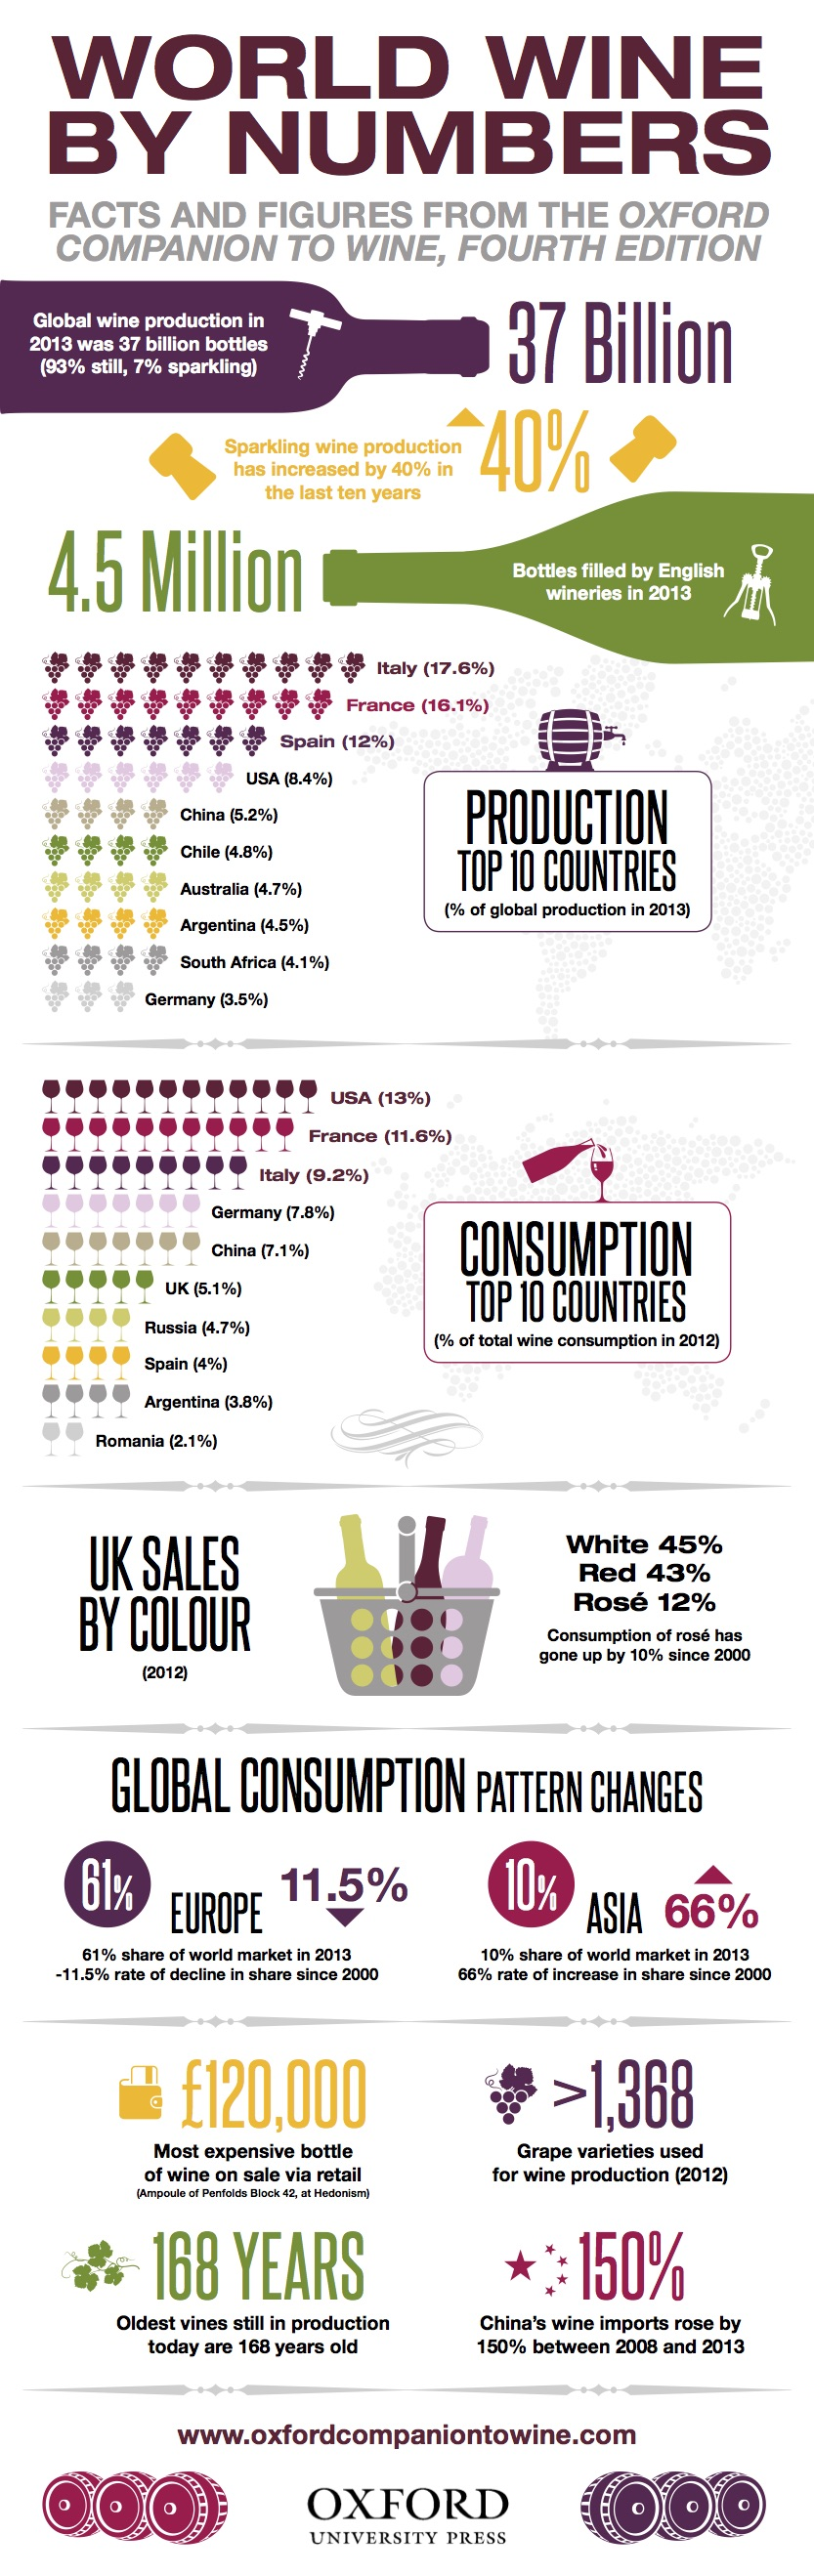 Oxford Companion Wine Infographic 600px JR version.jpg